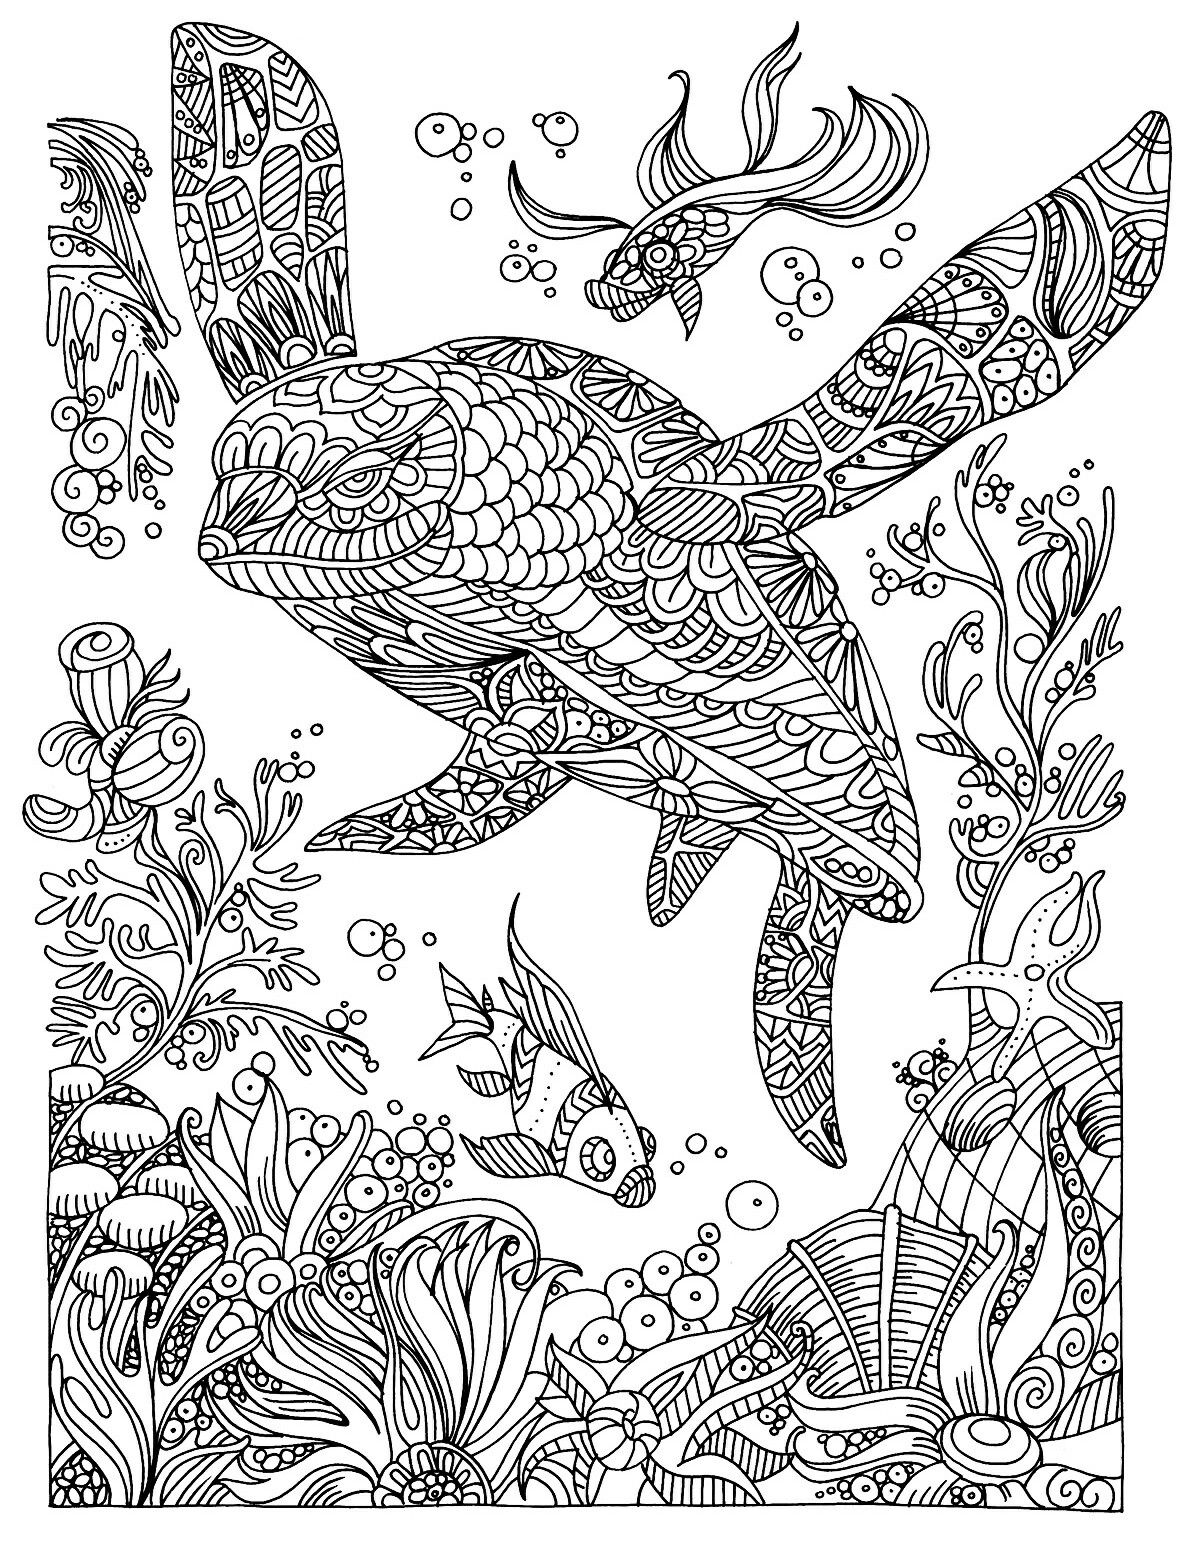 Pin By Hyeexpectations On Coloring Therapy Under The Sea Mandala Coloring Pages Relaxing Coloring Book Animal Coloring Pages [ 1541 x 1200 Pixel ]